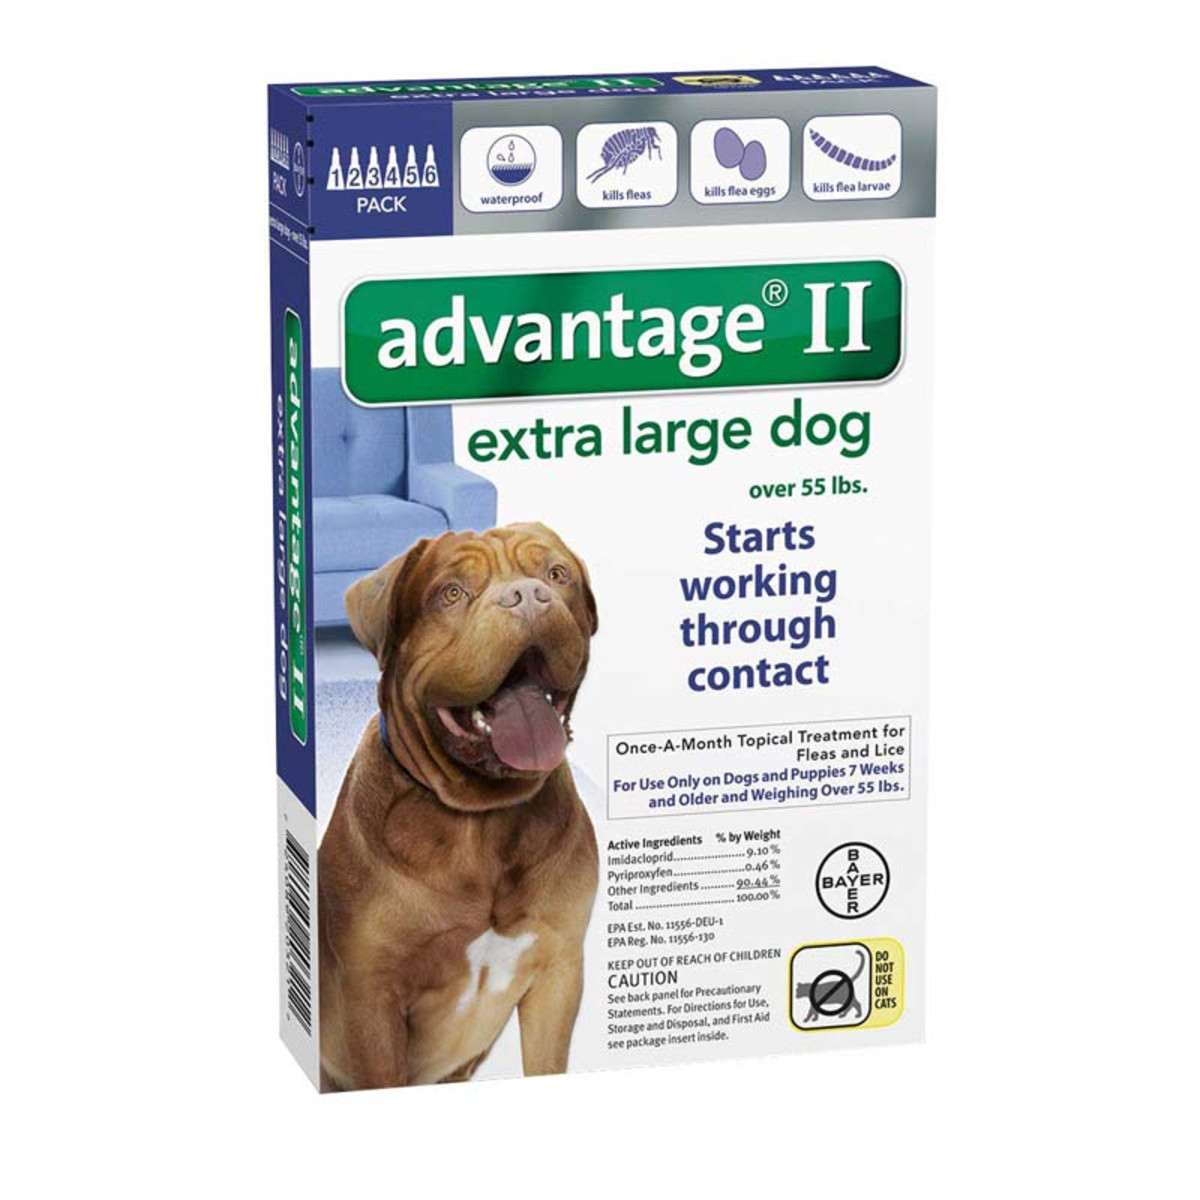 6 Pack of Advantage II Blue Flea Treatment Extra Large Dogs Over 55 lbs